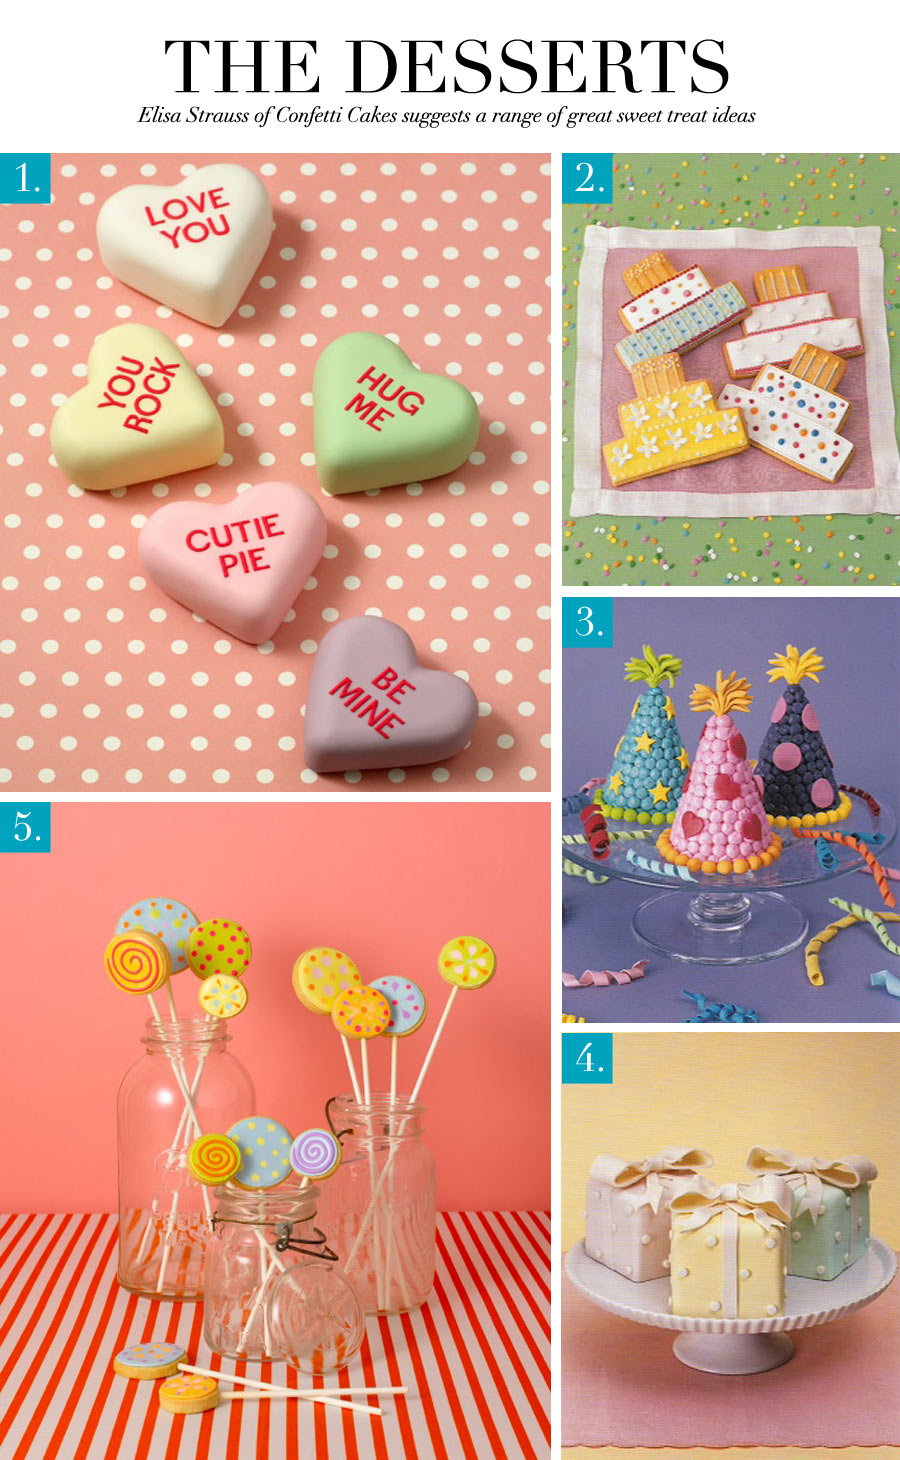 The Desserts - Elisa Strauss of Confetti Cakes suggests a range of great sweet treat ideas